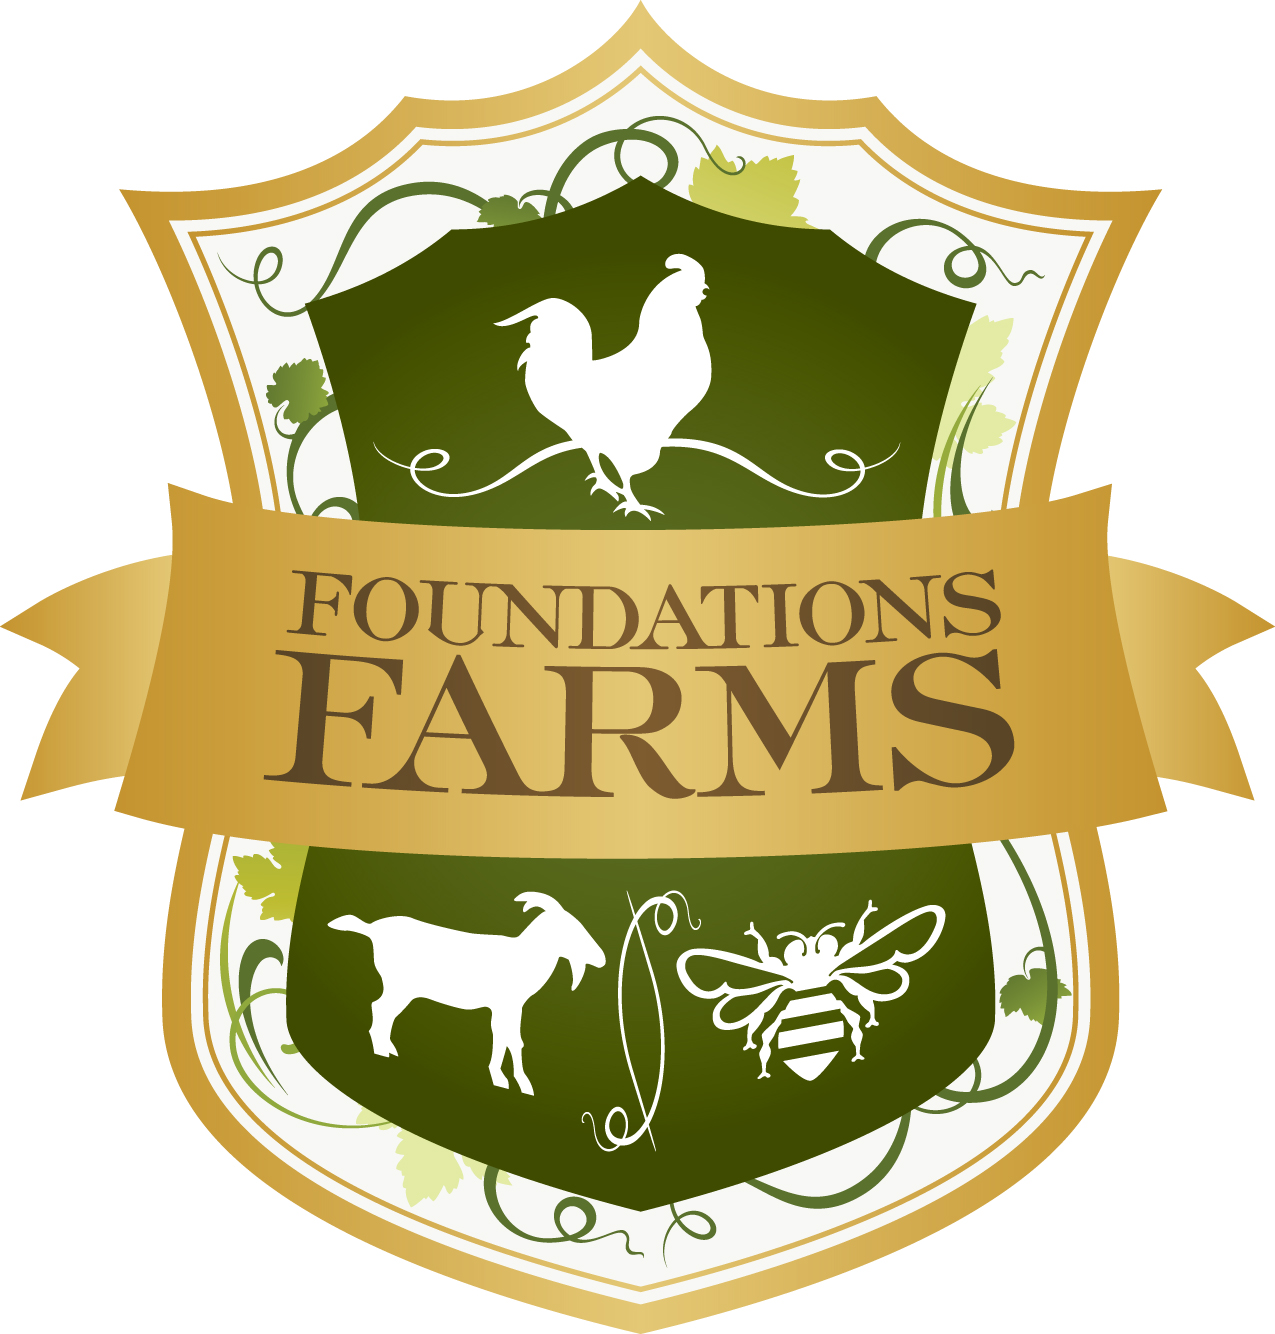 Foundations Farms